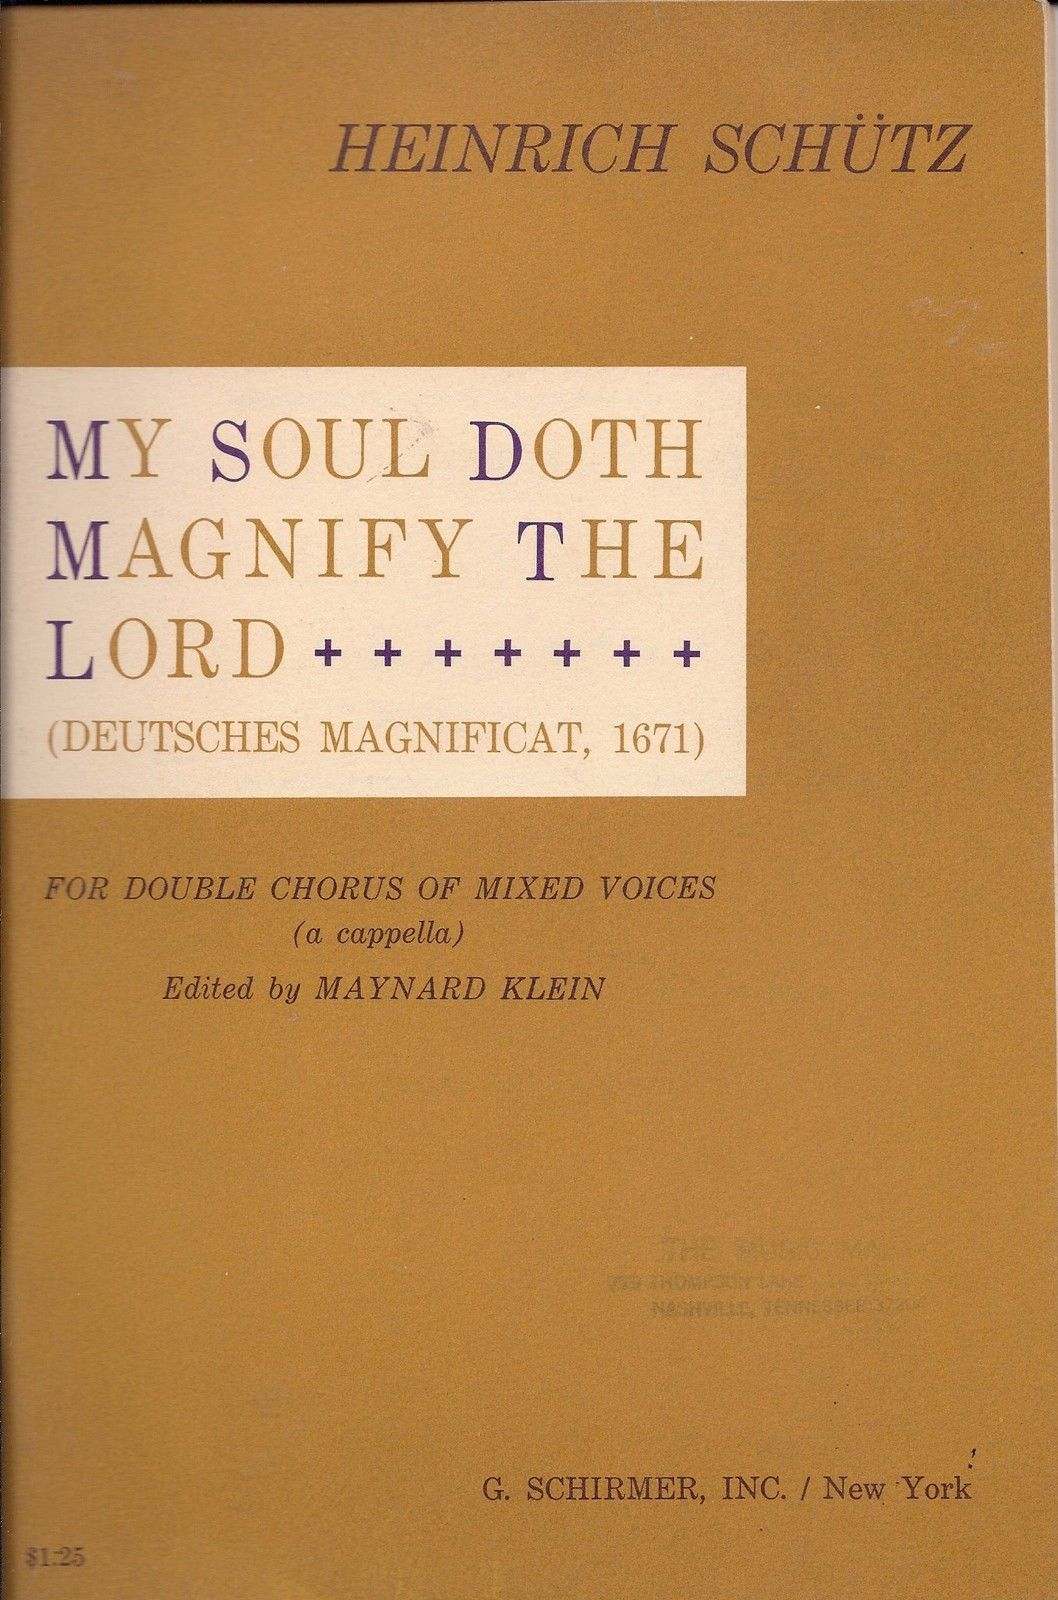 My Soul Doth Magnify the Lord-Song Book for Double Chorus of Mixed Voices